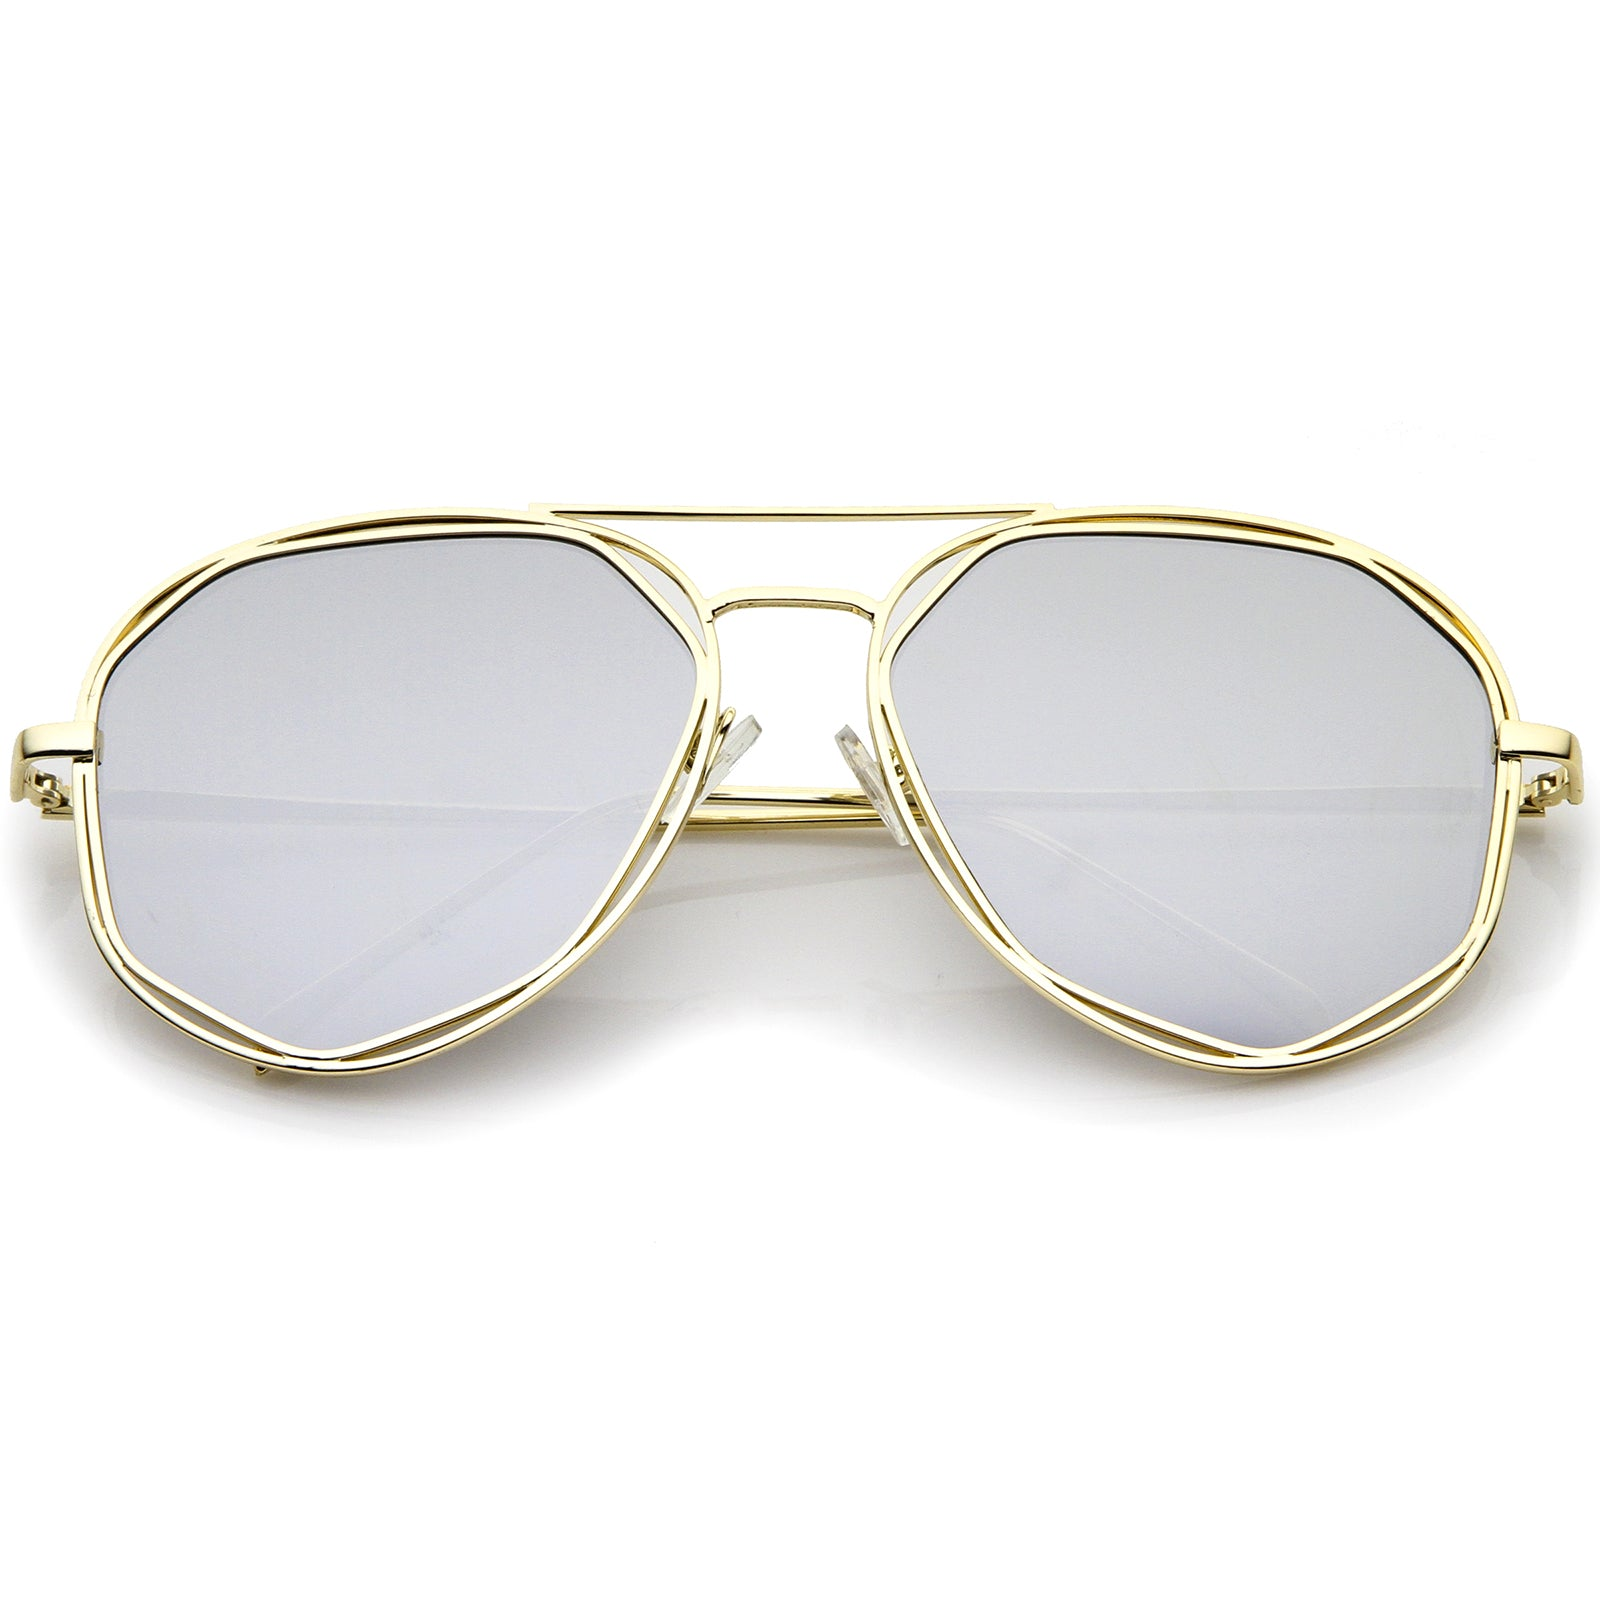 Geometric Hexagonal Metal Frame Colored Mirror Flat Lens Aviator Sunglasses 60mm - sunglass.la - 5